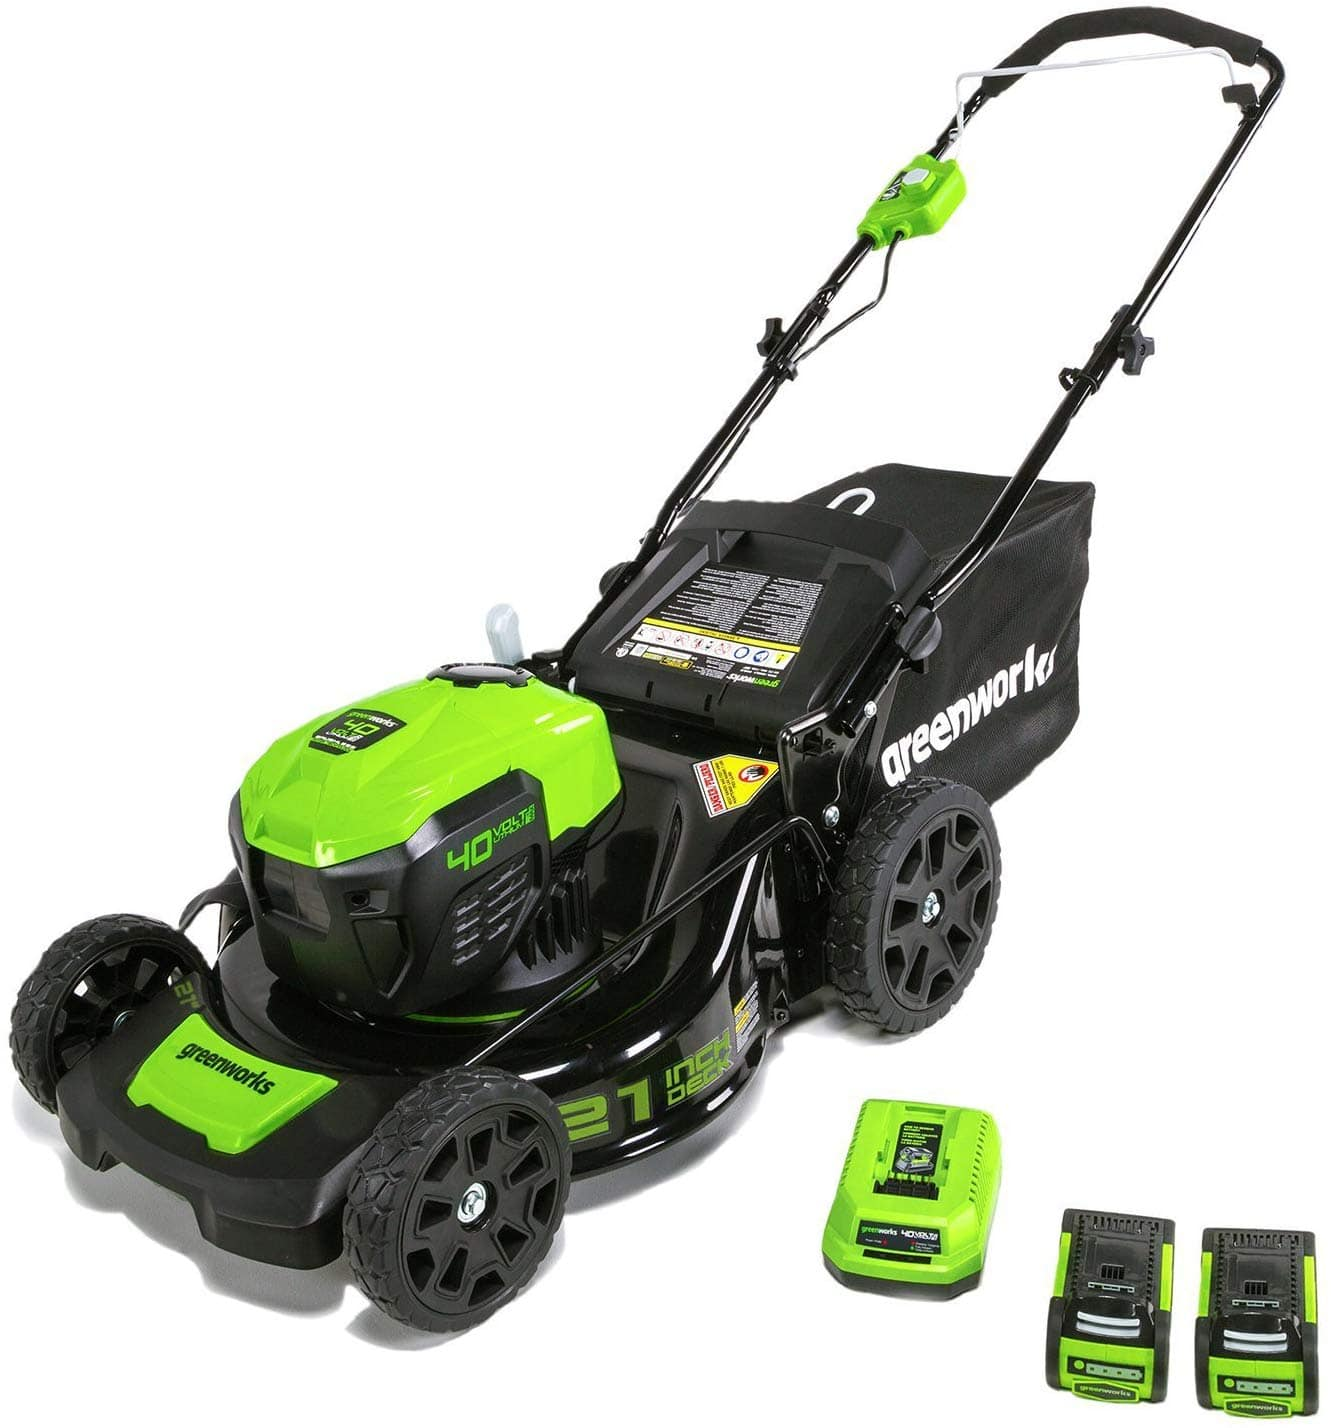 50% Off - Greenworks MO40L2512 21-Inch 40V Brushless Cordless Mower, Charger and Two 2.5 Ah Batteries Included $199.99